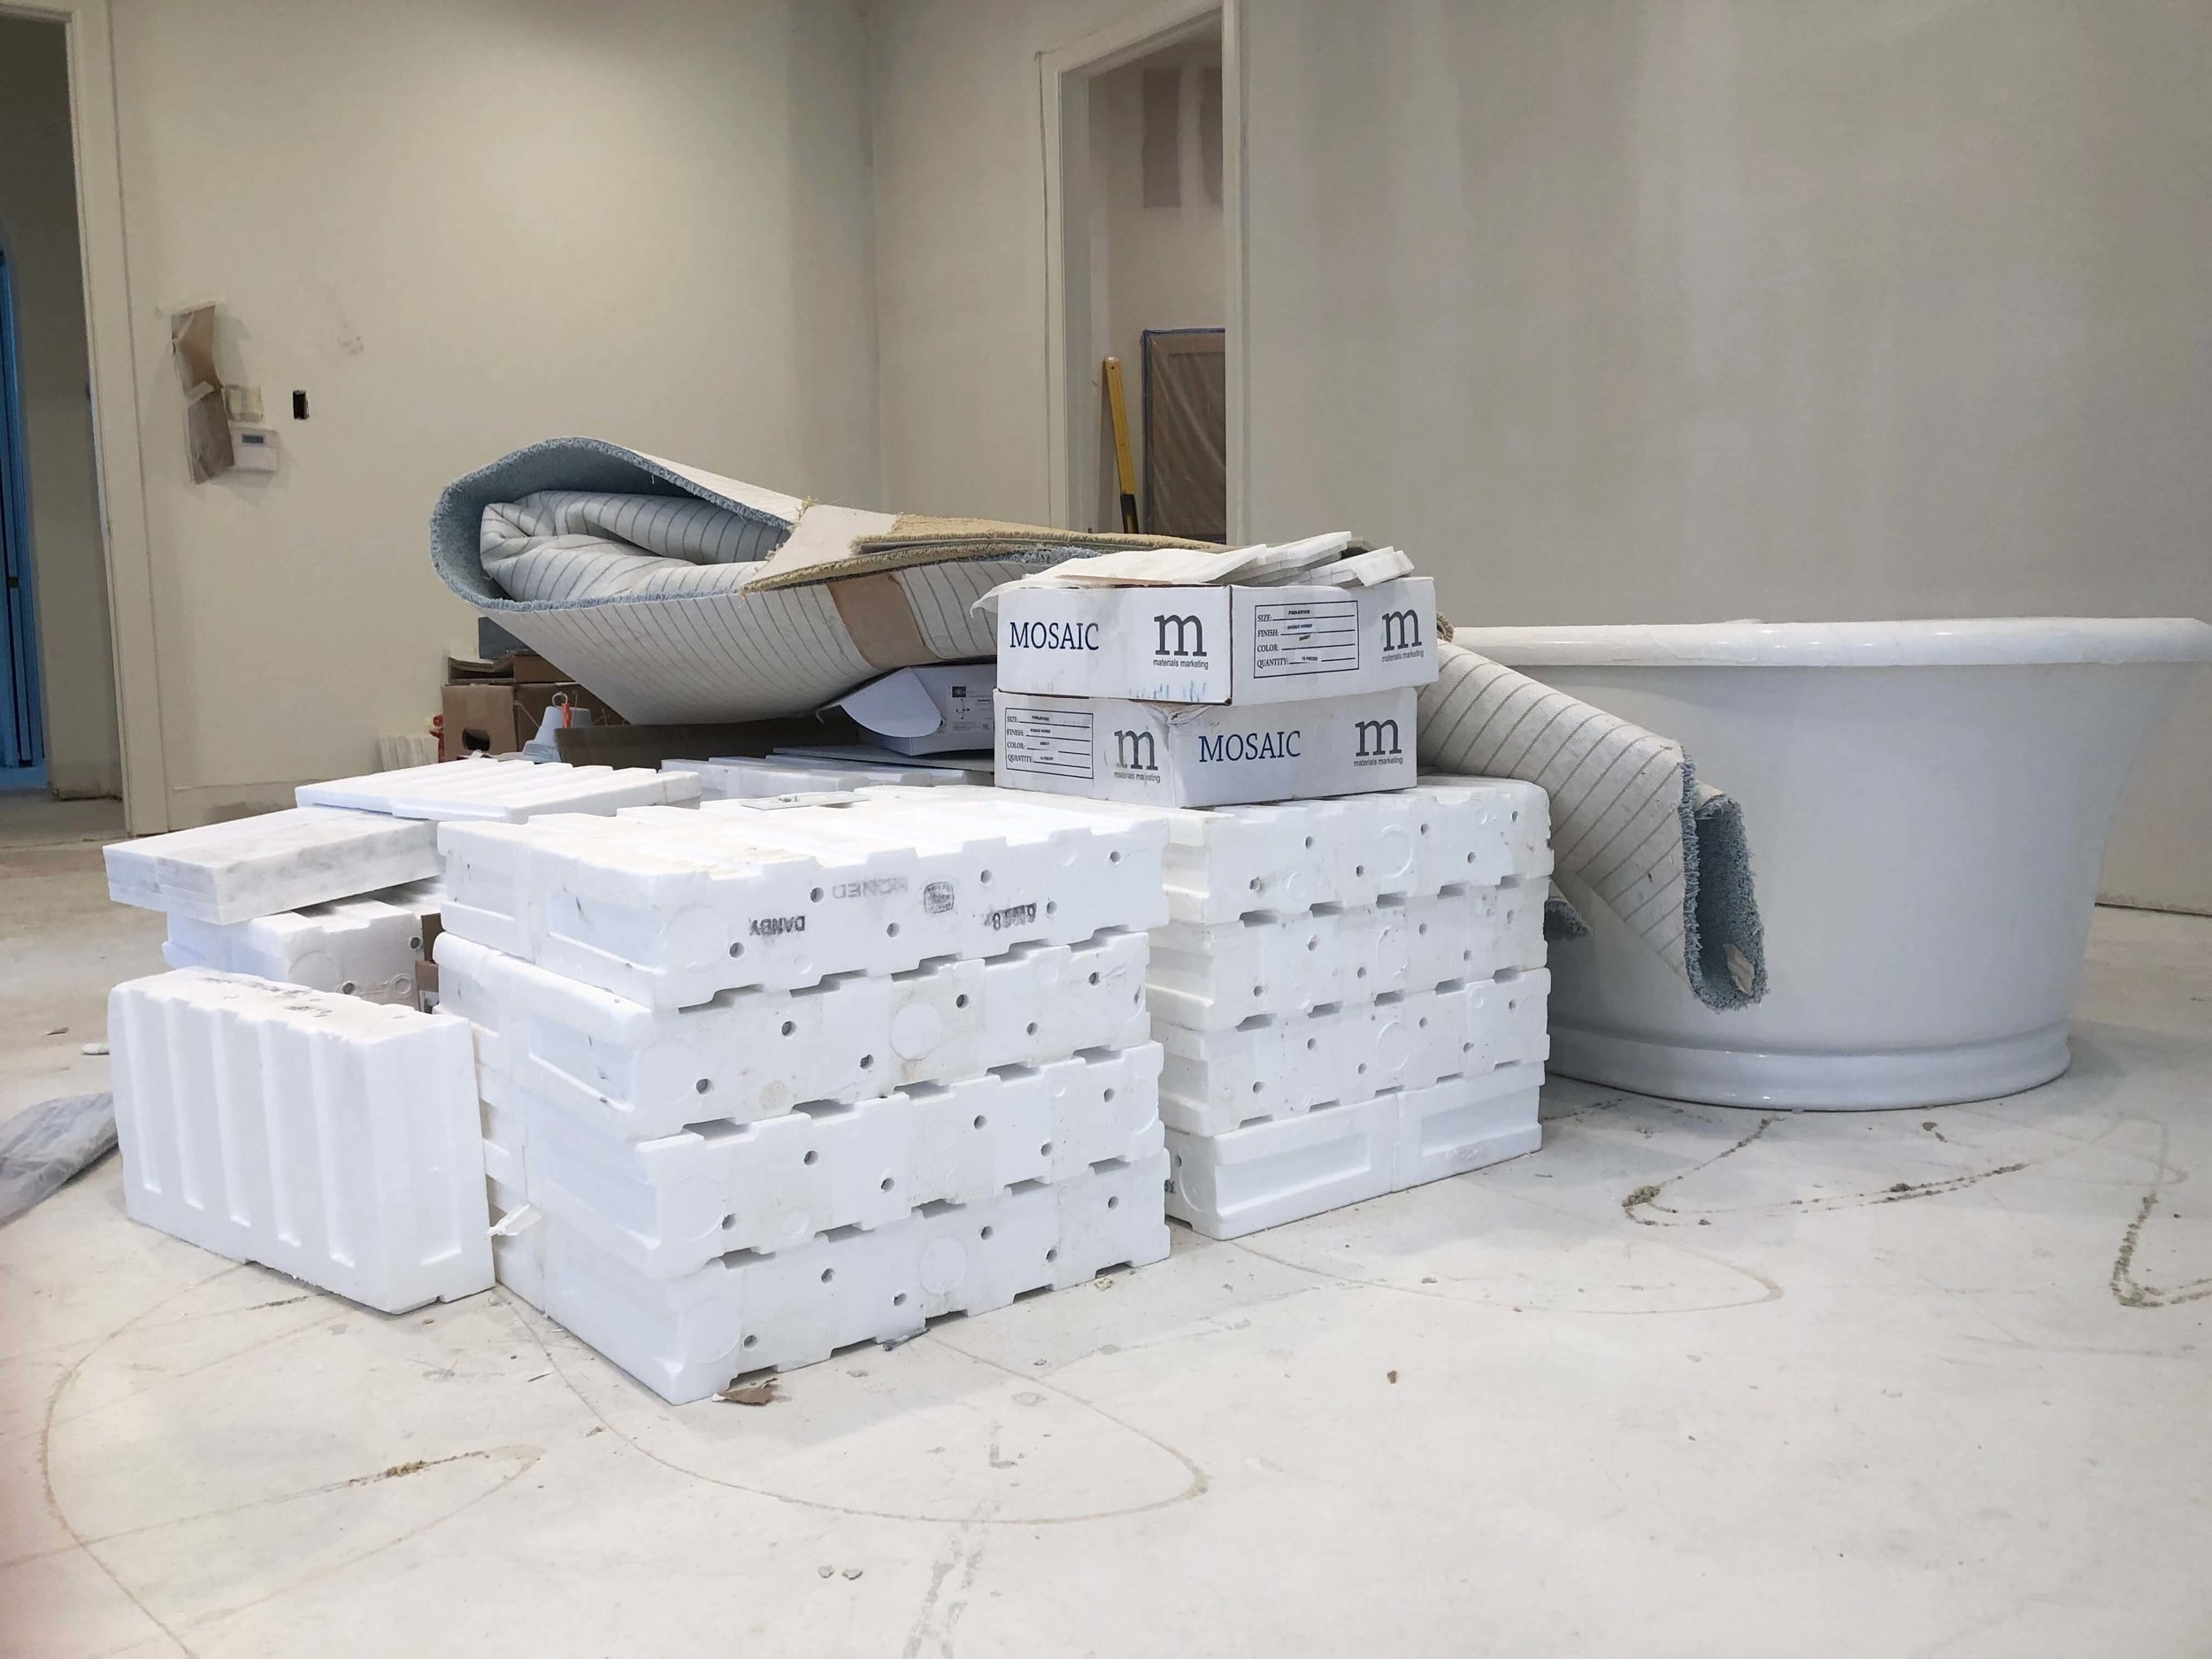 Stacks of tile and new tub on a remodel job site. How did these get here? If you're a designer and you are buying these products for your clients, you need to think this through.